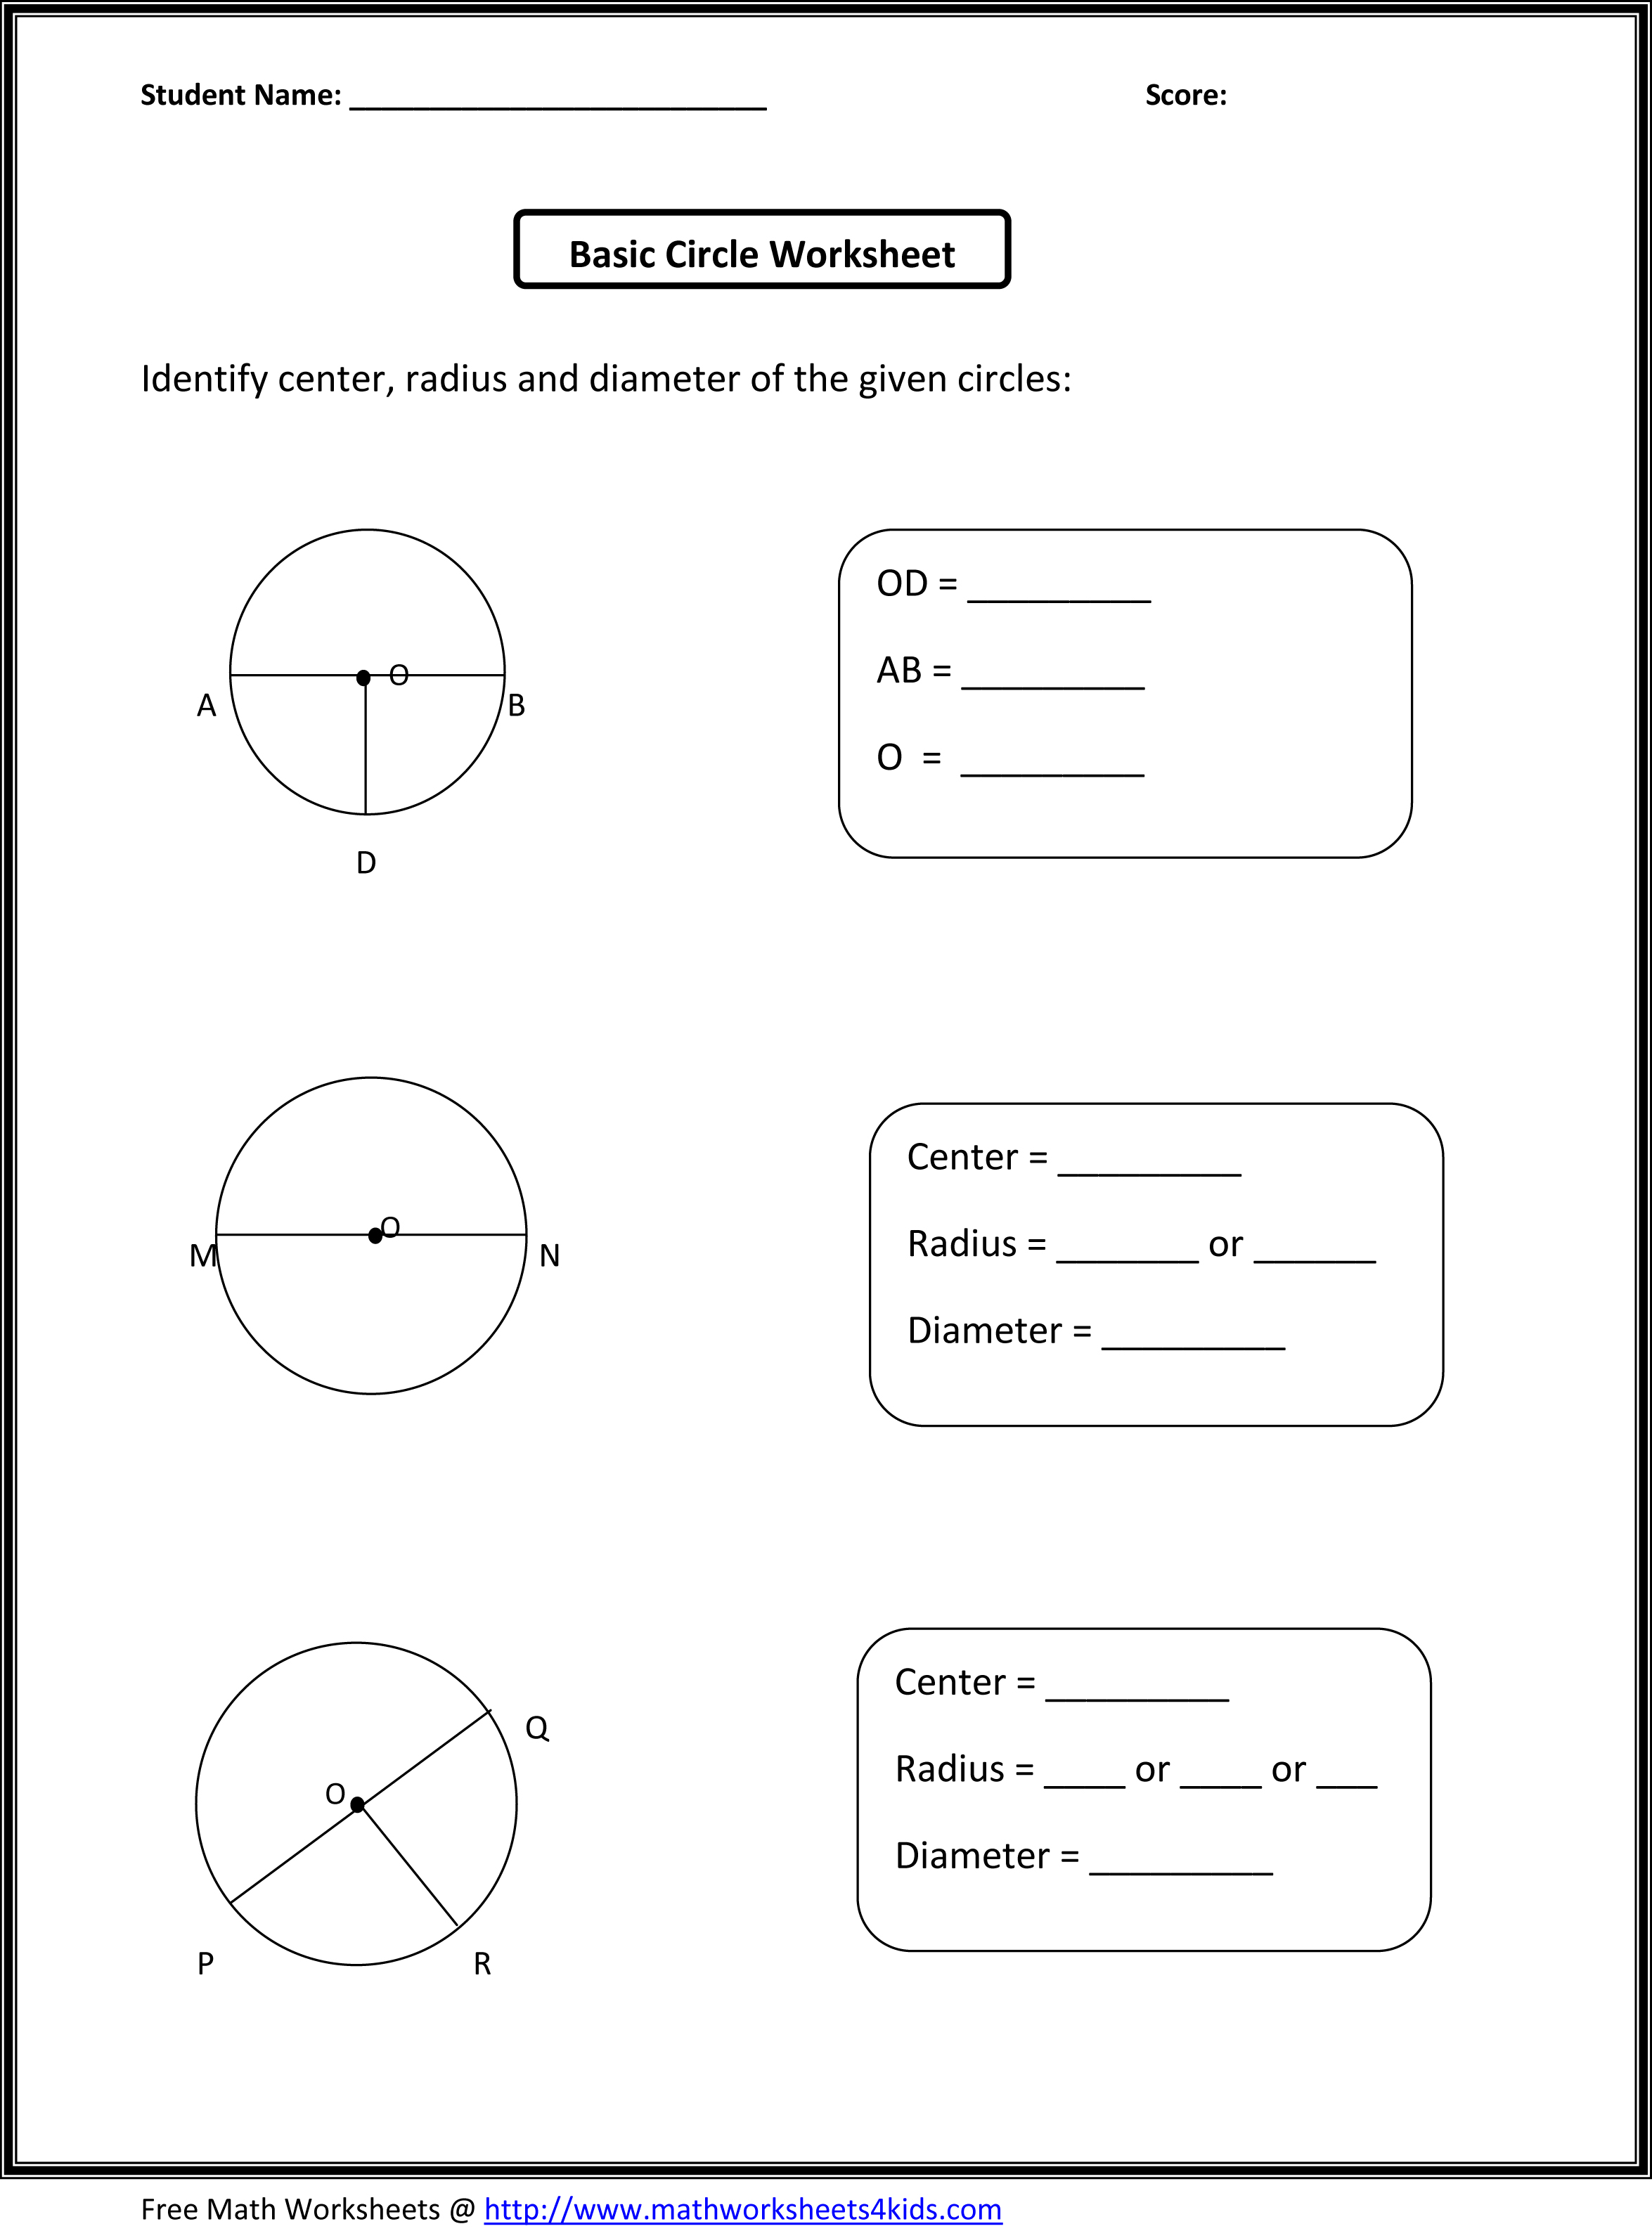 4 Math Geometry Worksheets Scalien – Grade 4 Math Geometry Worksheets